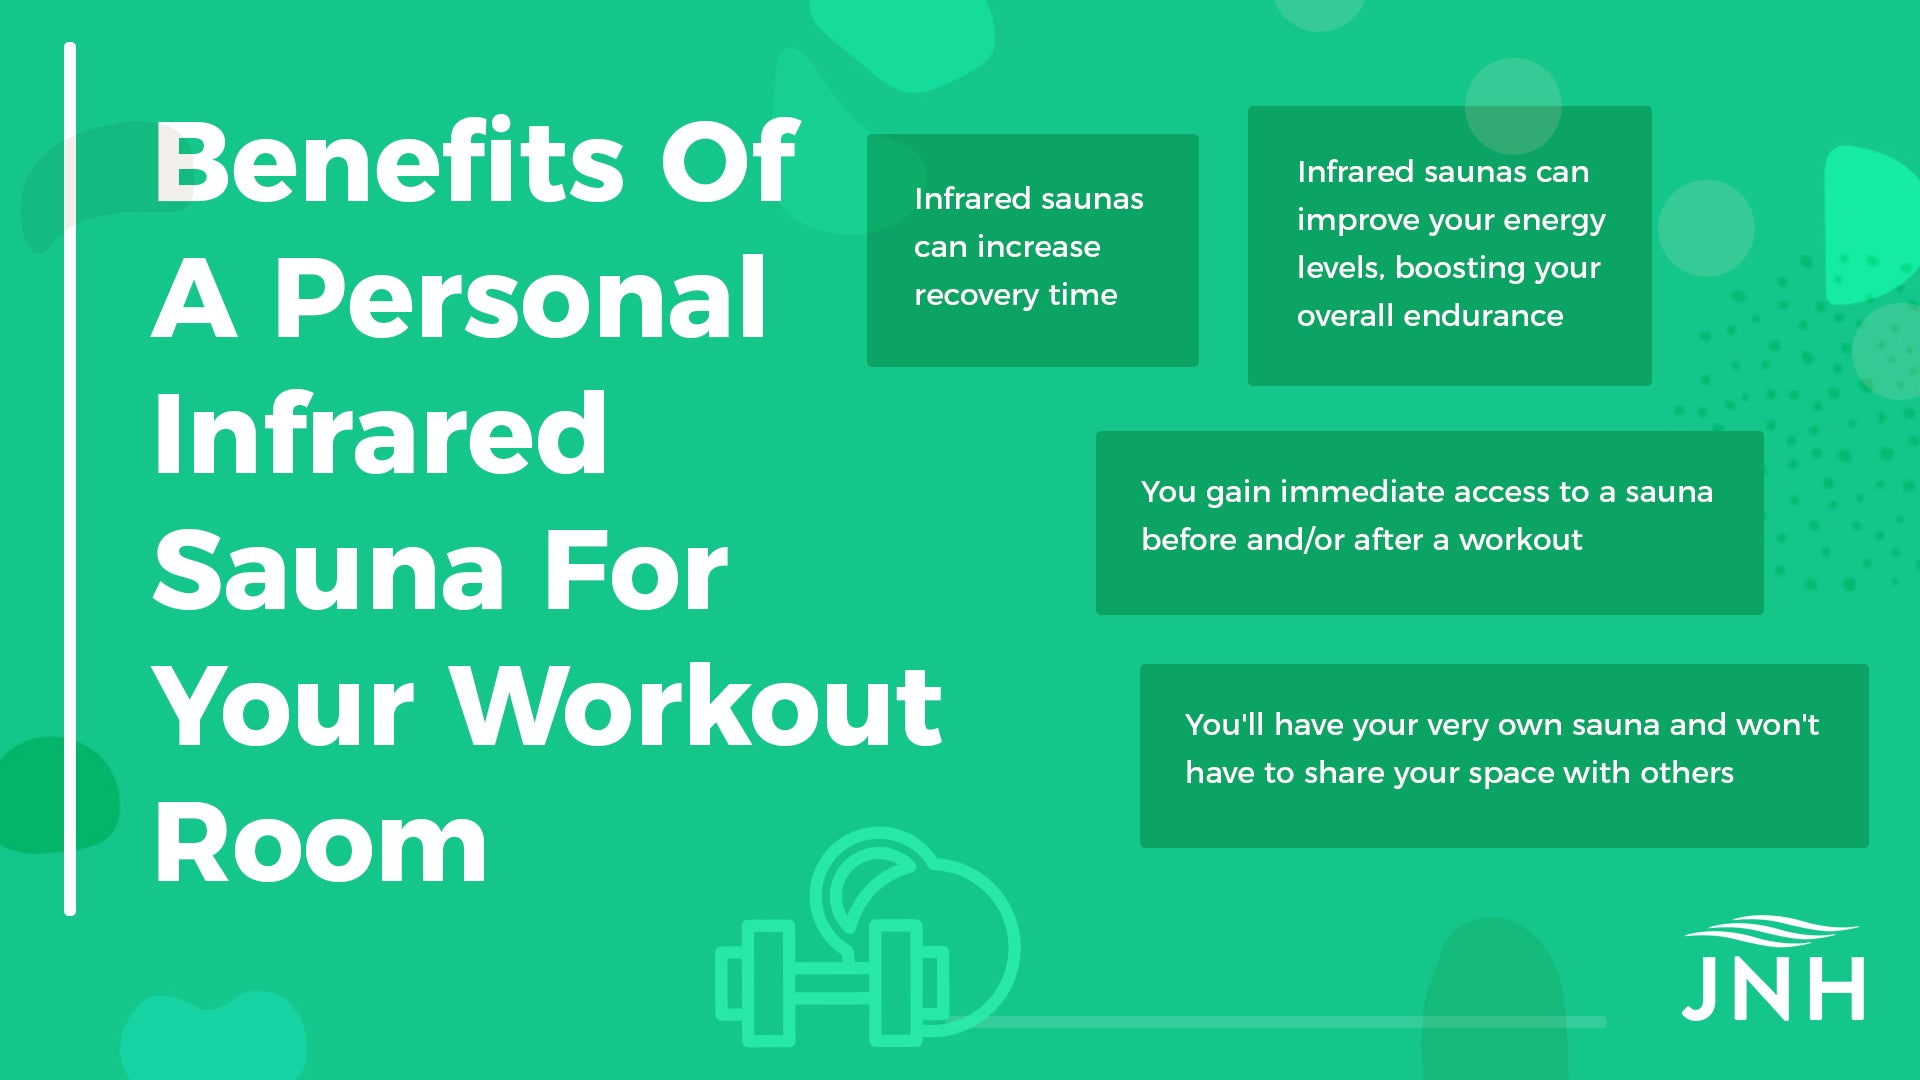 Benefits Of A Personal Infrared Sauna For Your Workout Room: Infrared saunas can increase recovery time, Infrared saunas can improve your energy levels, boosting your overall endurance, You gain immediate access to a sauna before and/or after a workout, You'll have your very own sauna and won't have to share your space with others